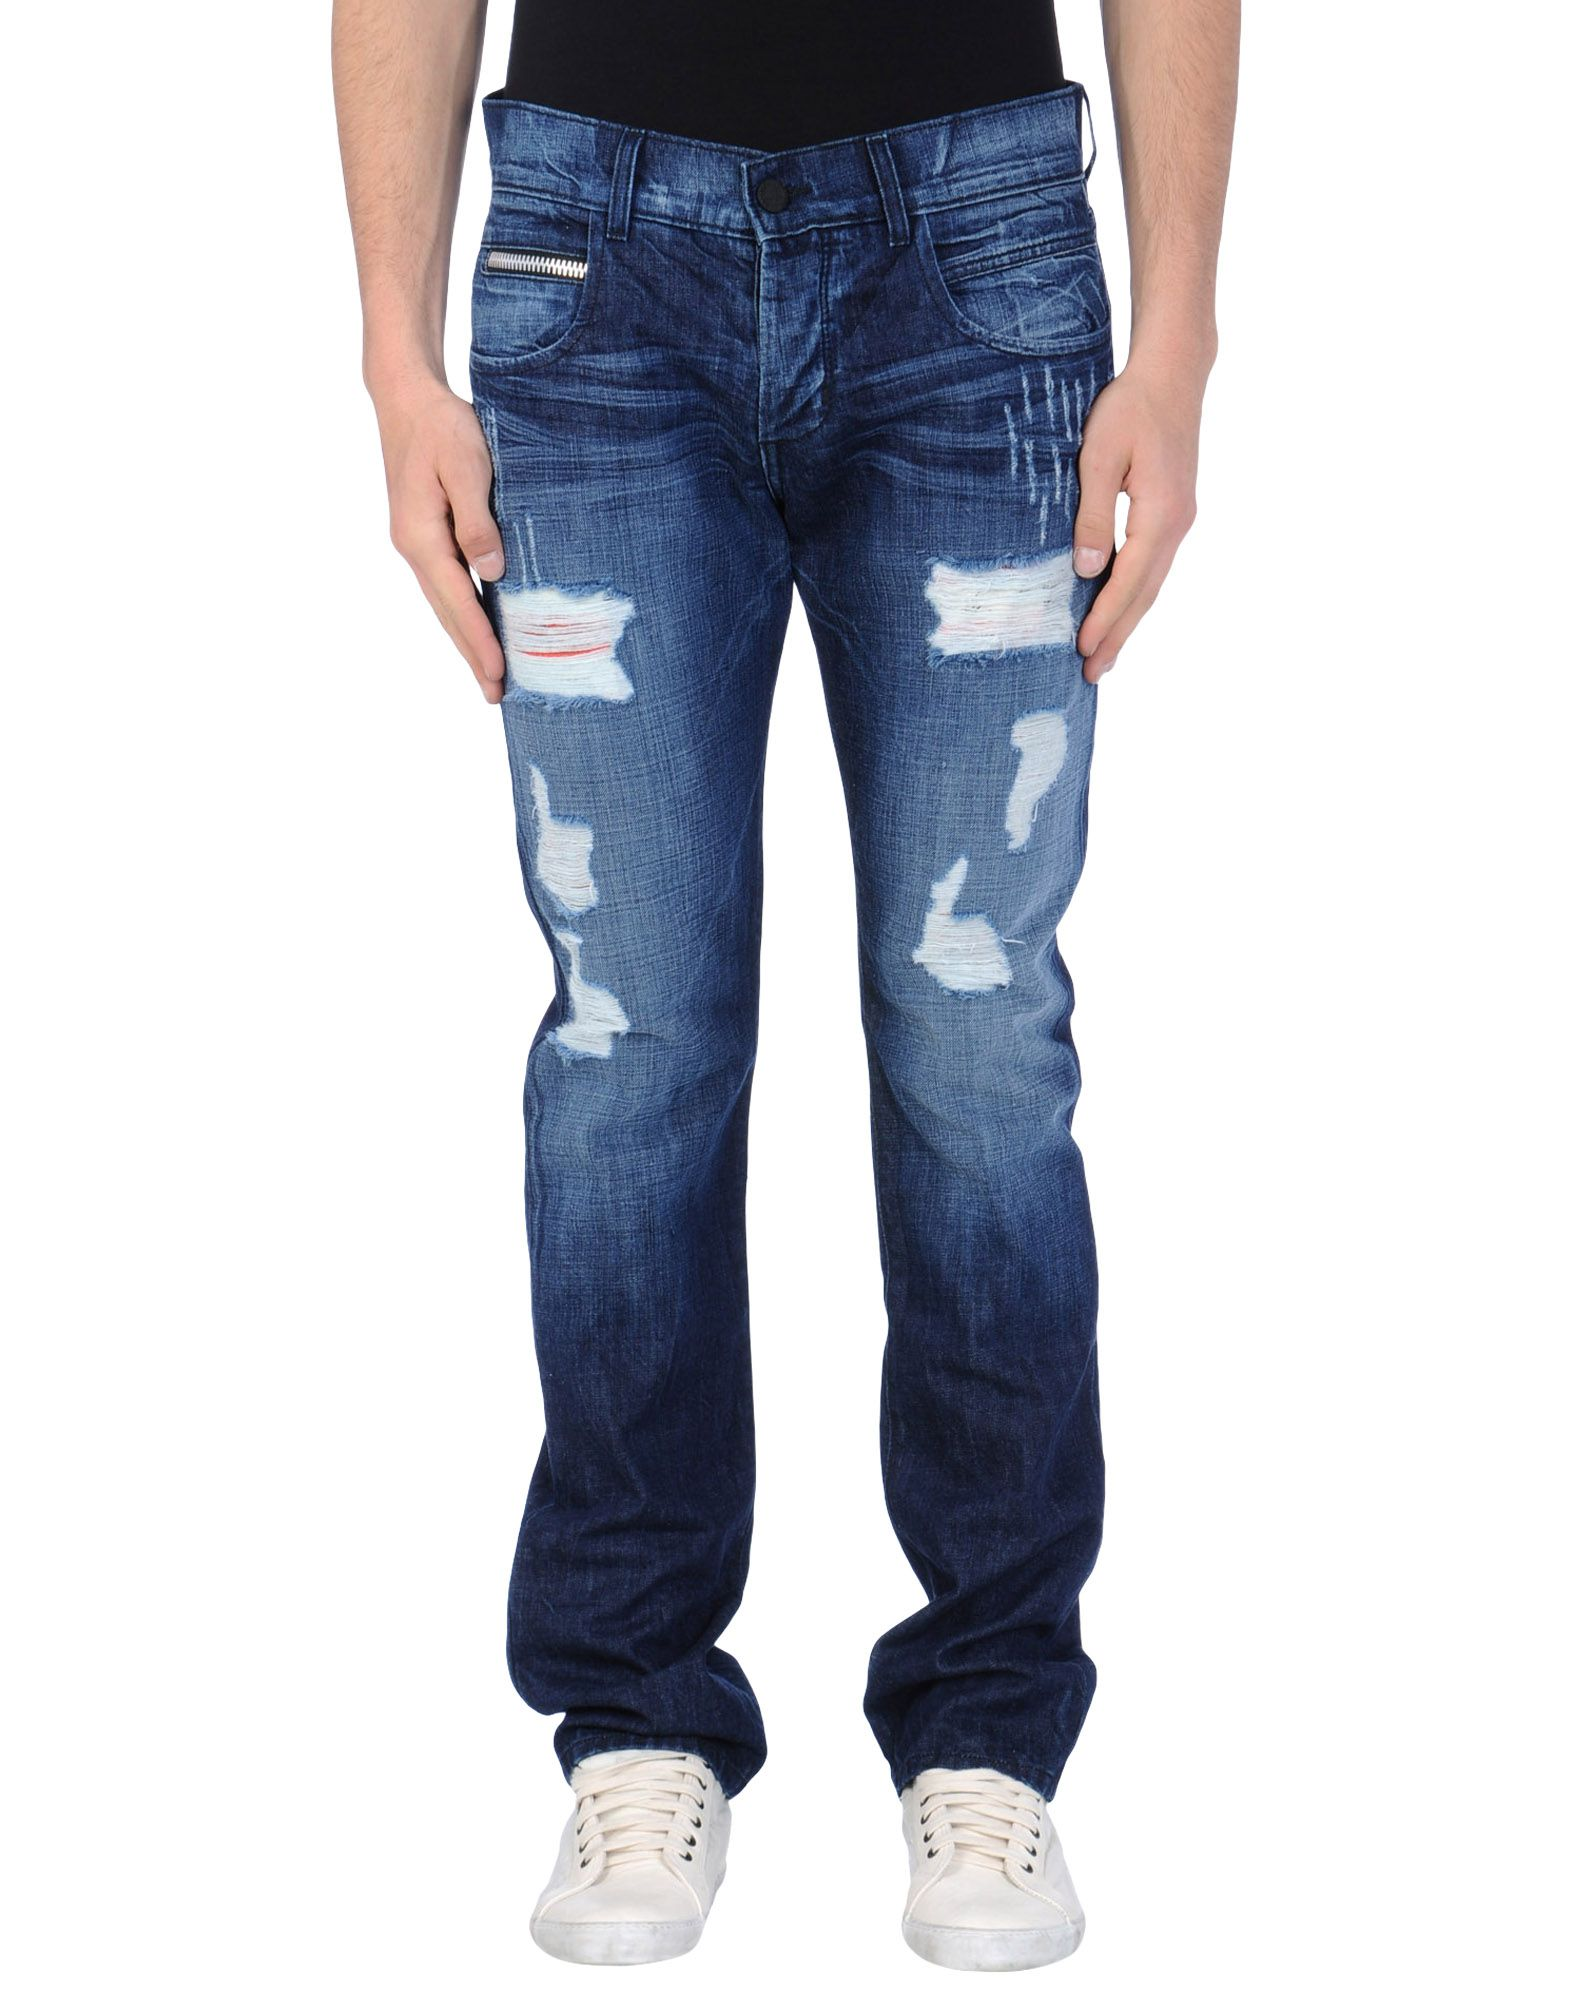 Rockstar Distressed Straight Jeans in Blue for Men